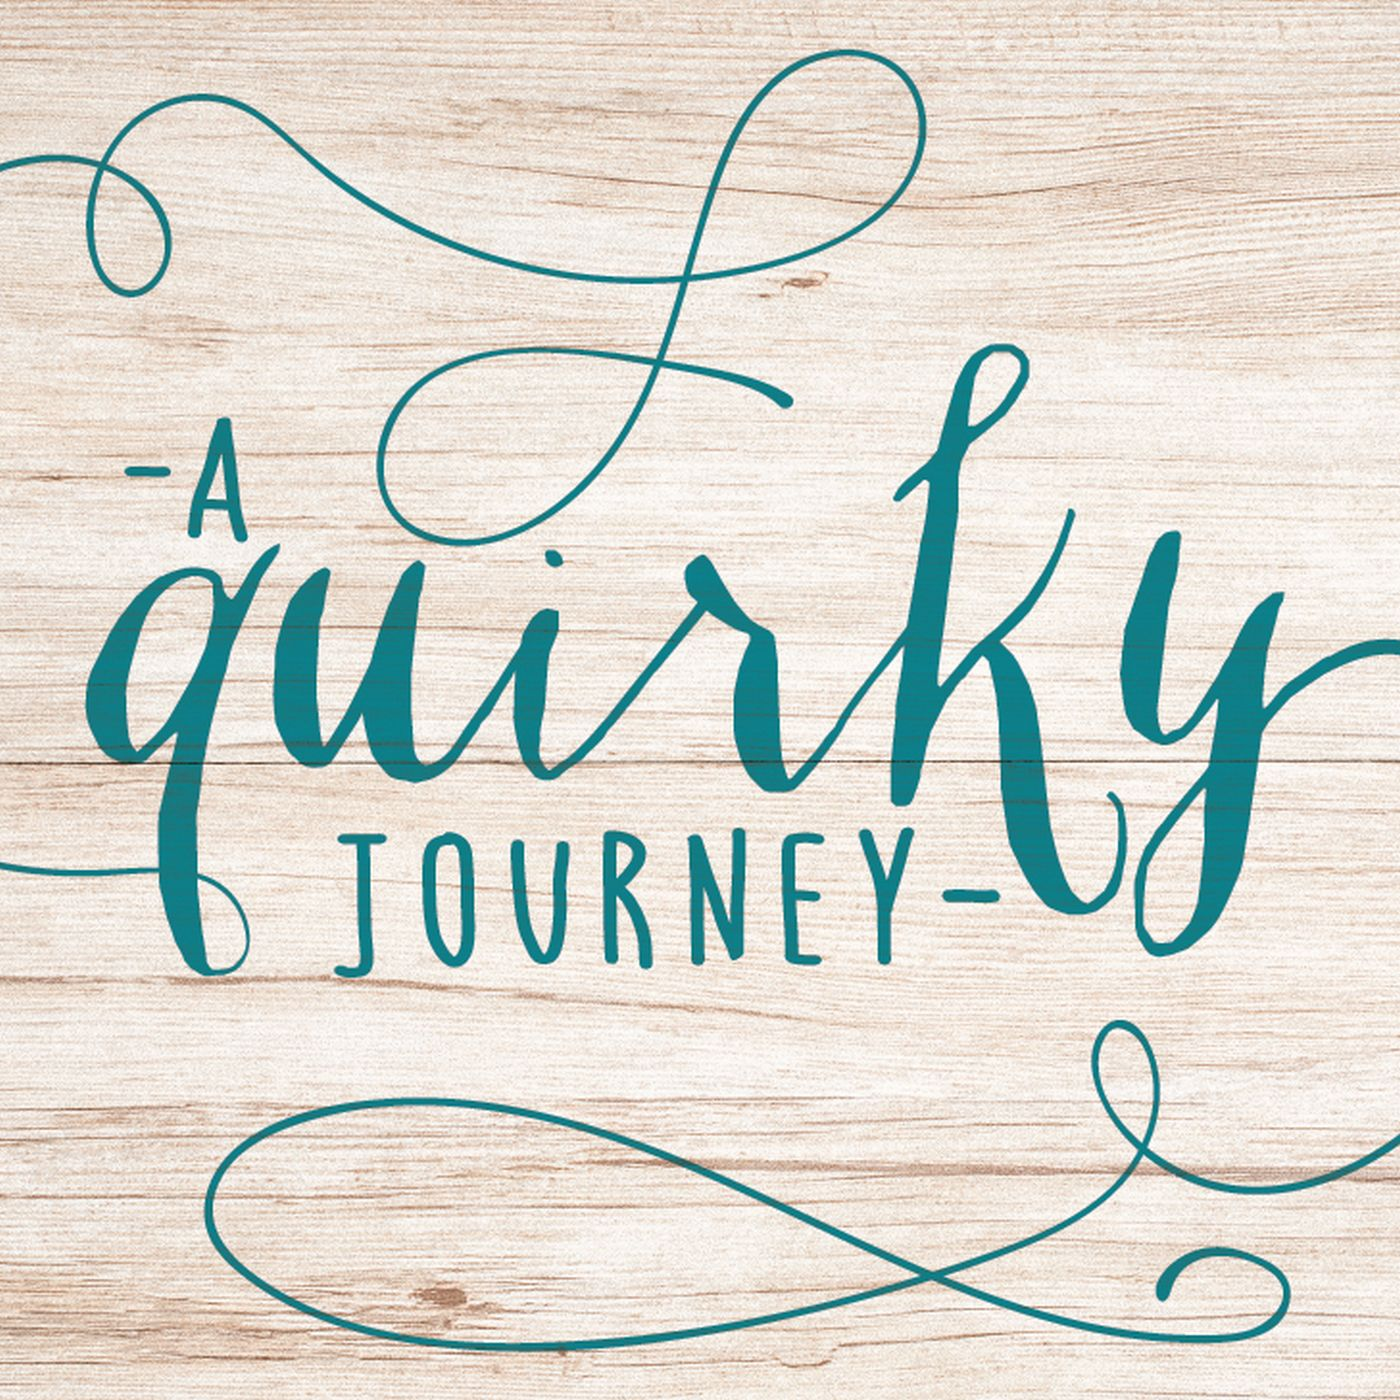 A Quirky Journey